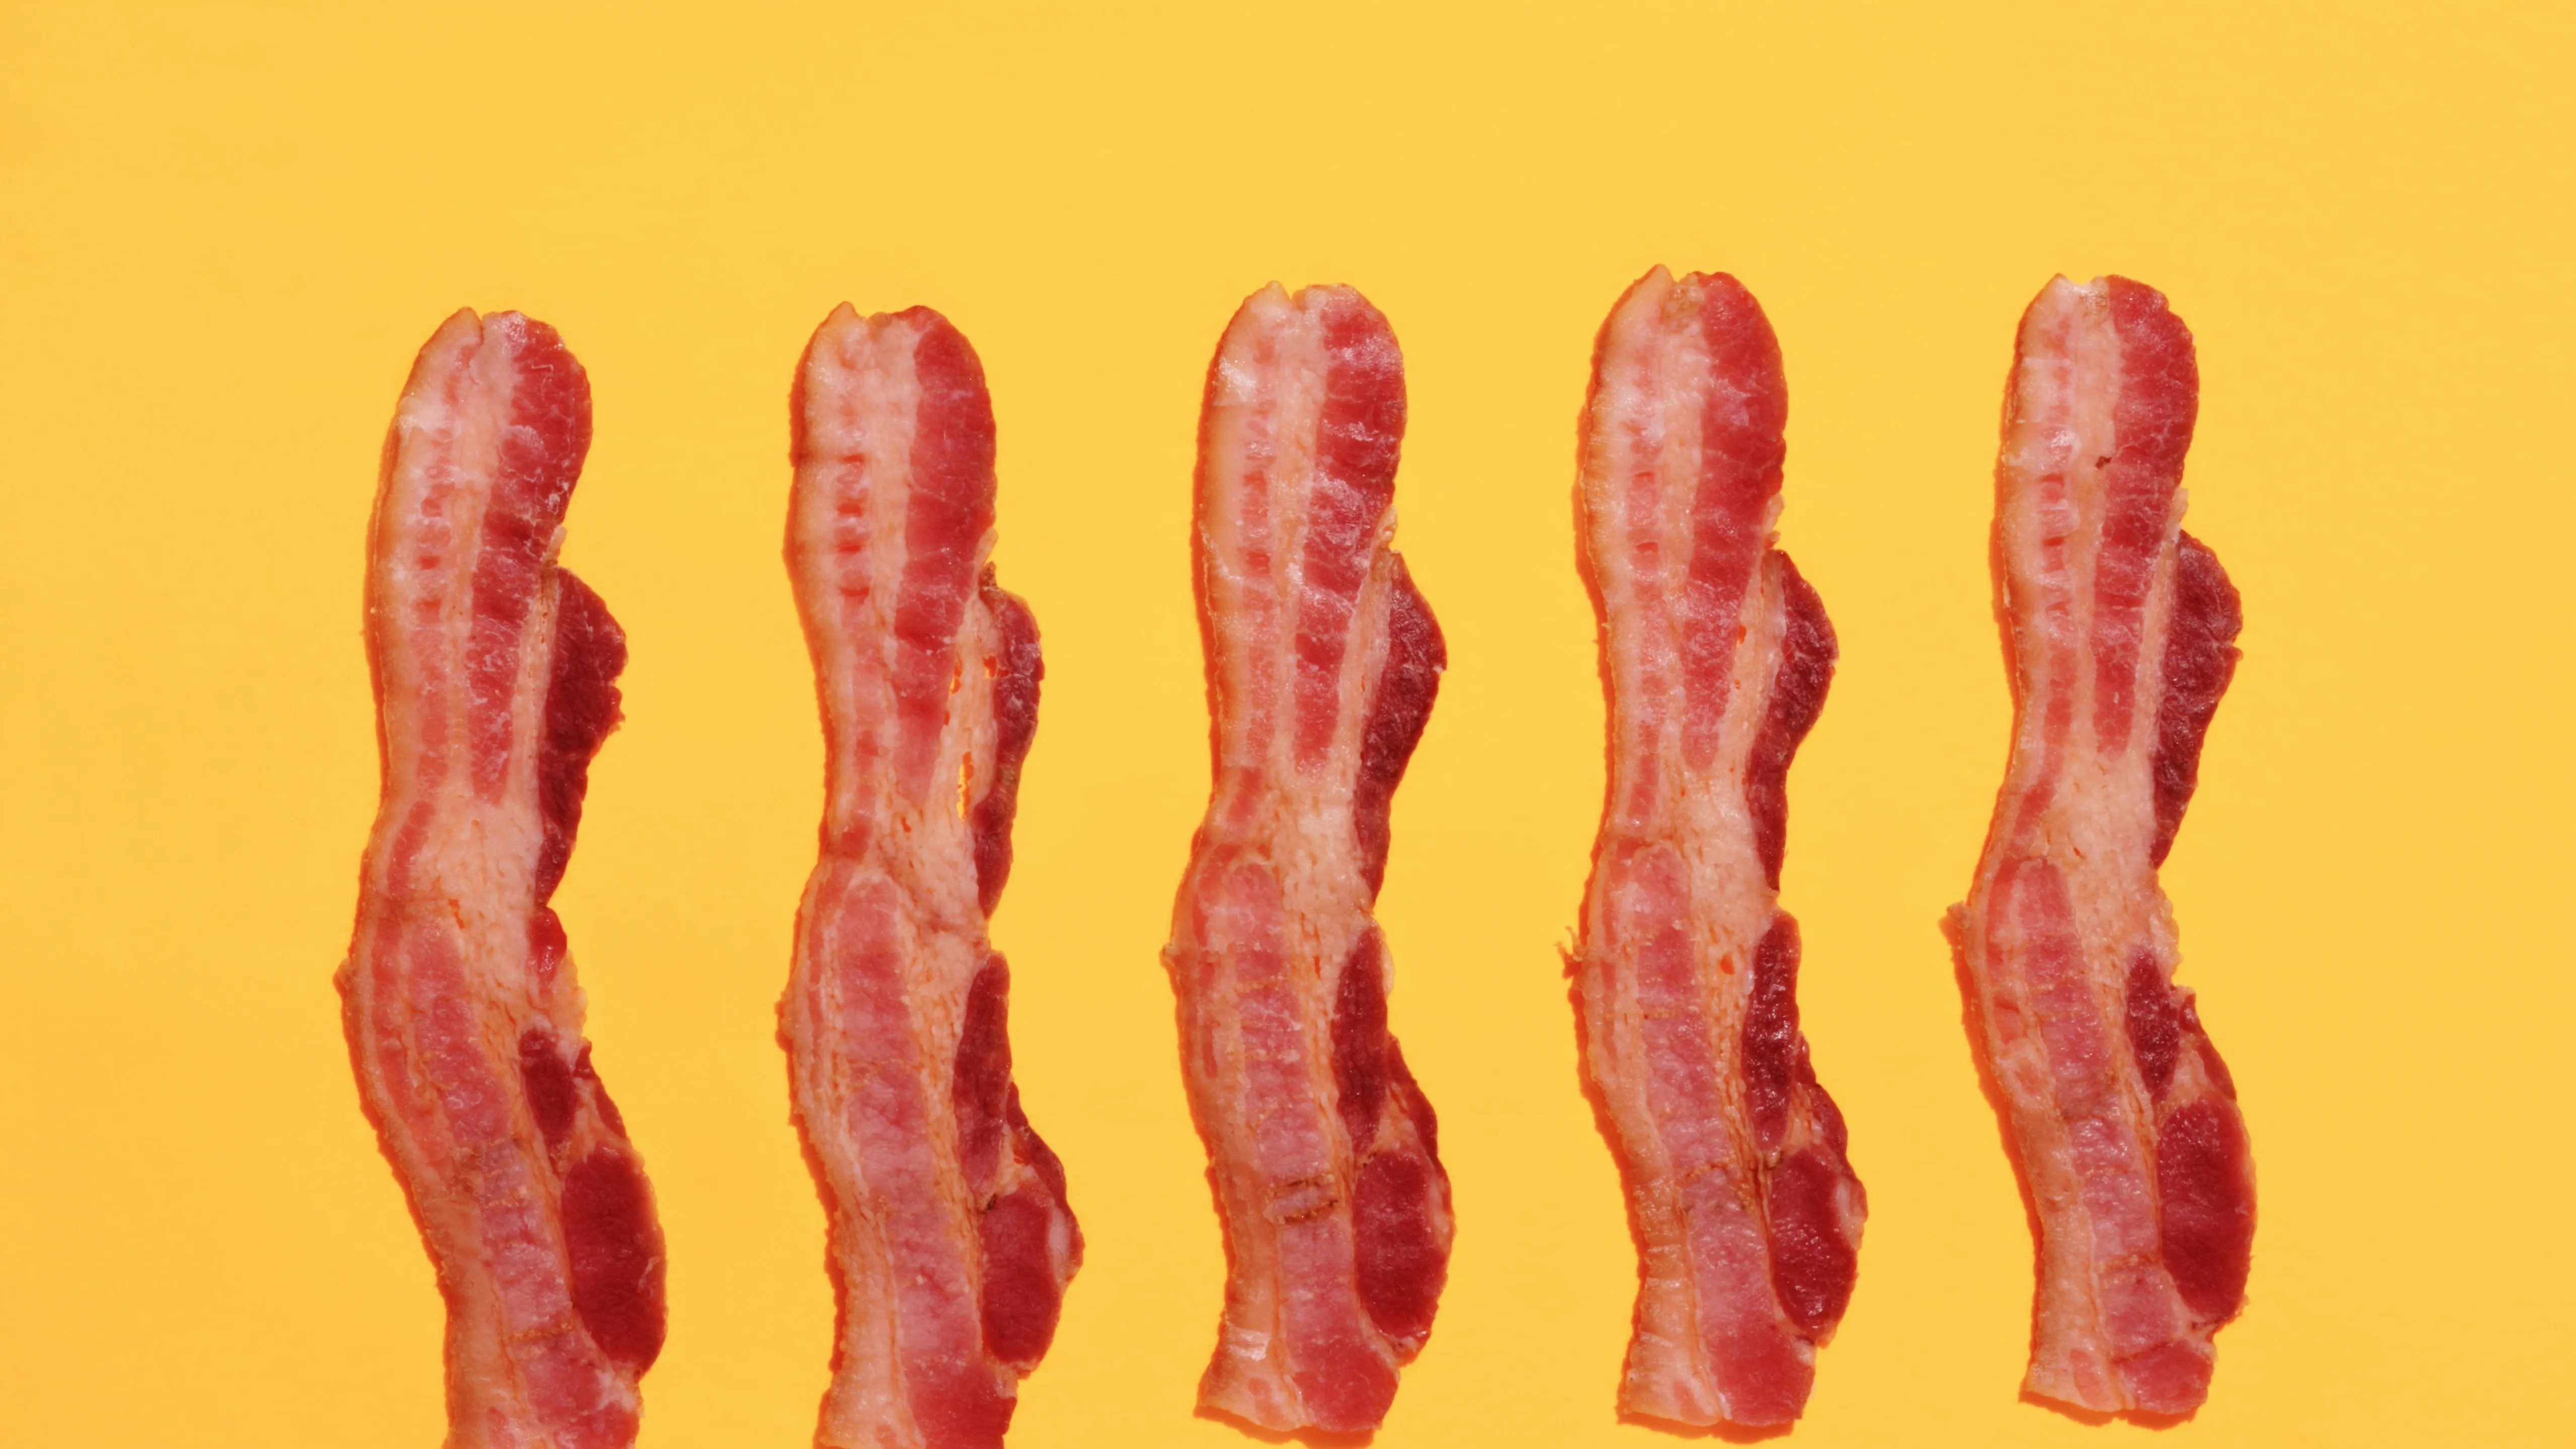 https://i0.wp.com/media.gq.com/photos/590dd3139fe30f3d4ab08547/16:9/pass/gq-bacon.jpg